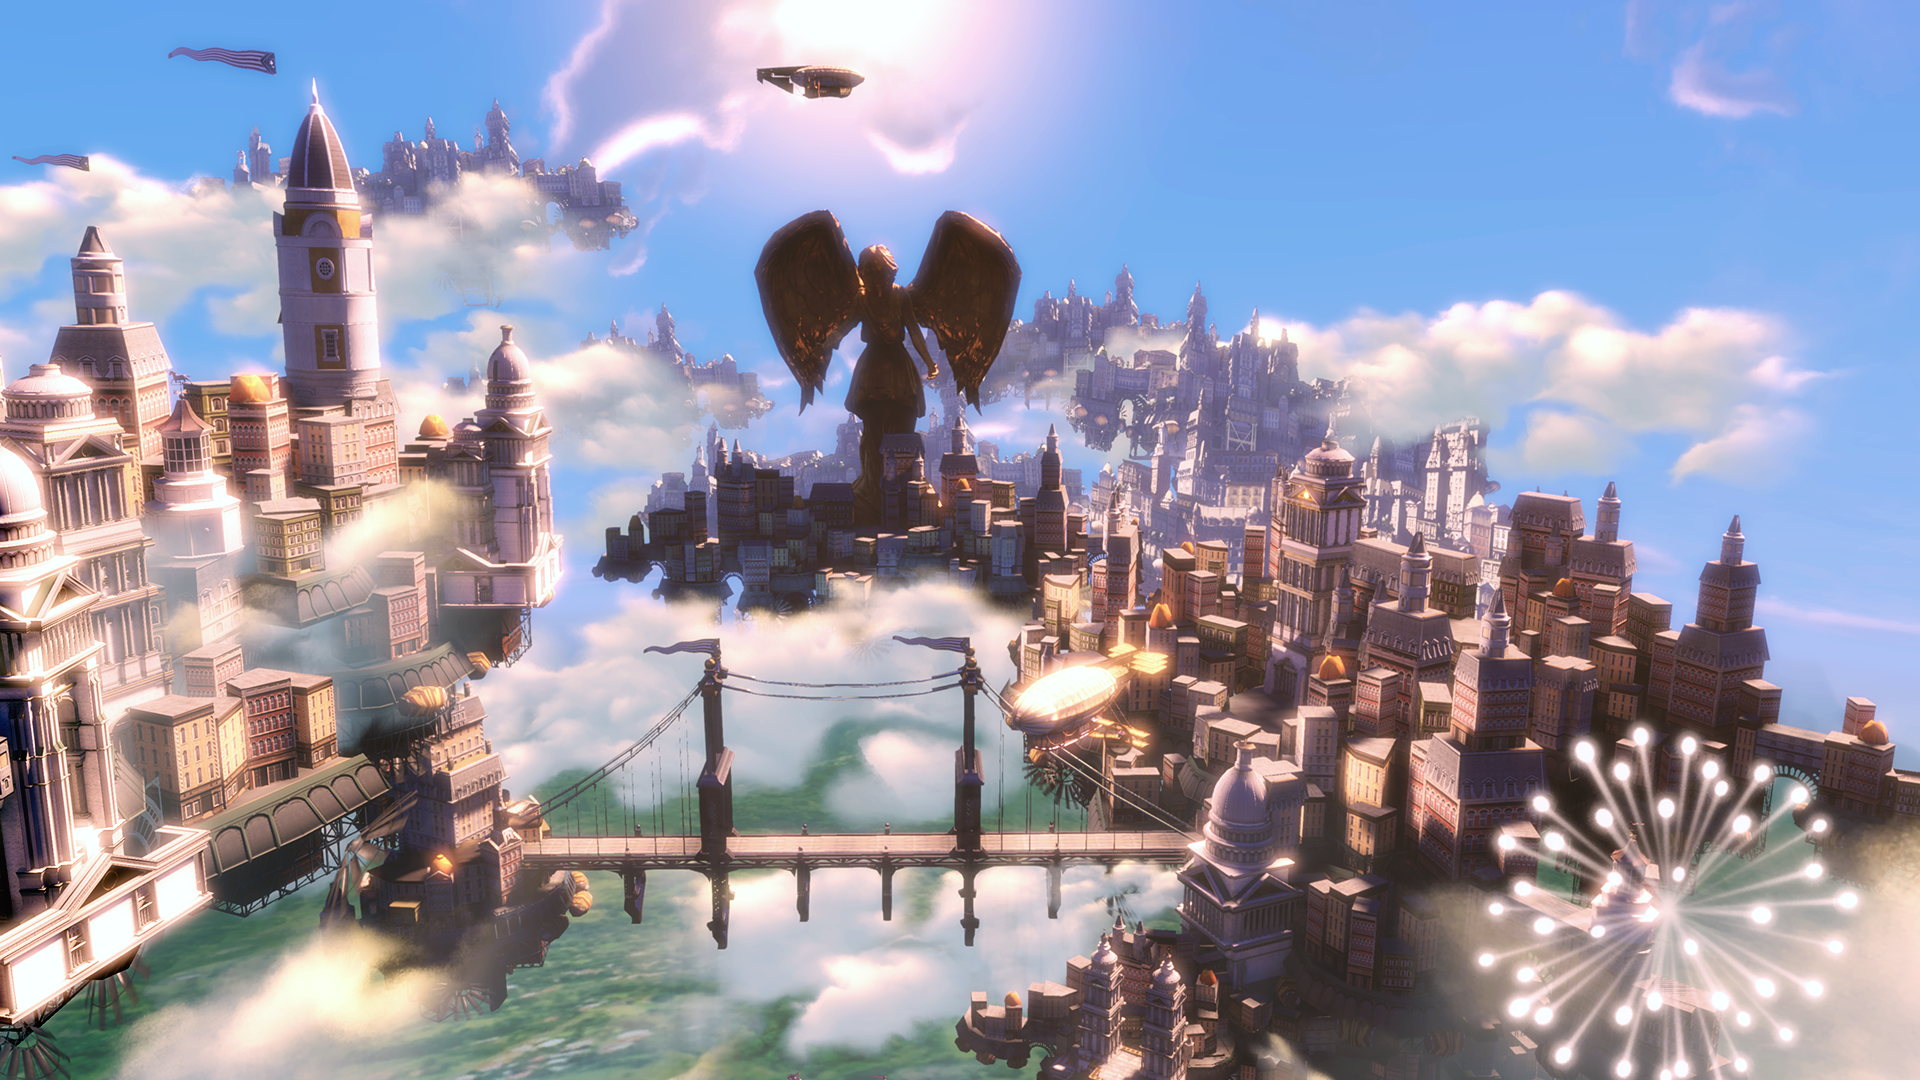 Image of Columbia from Bioshock Infinite